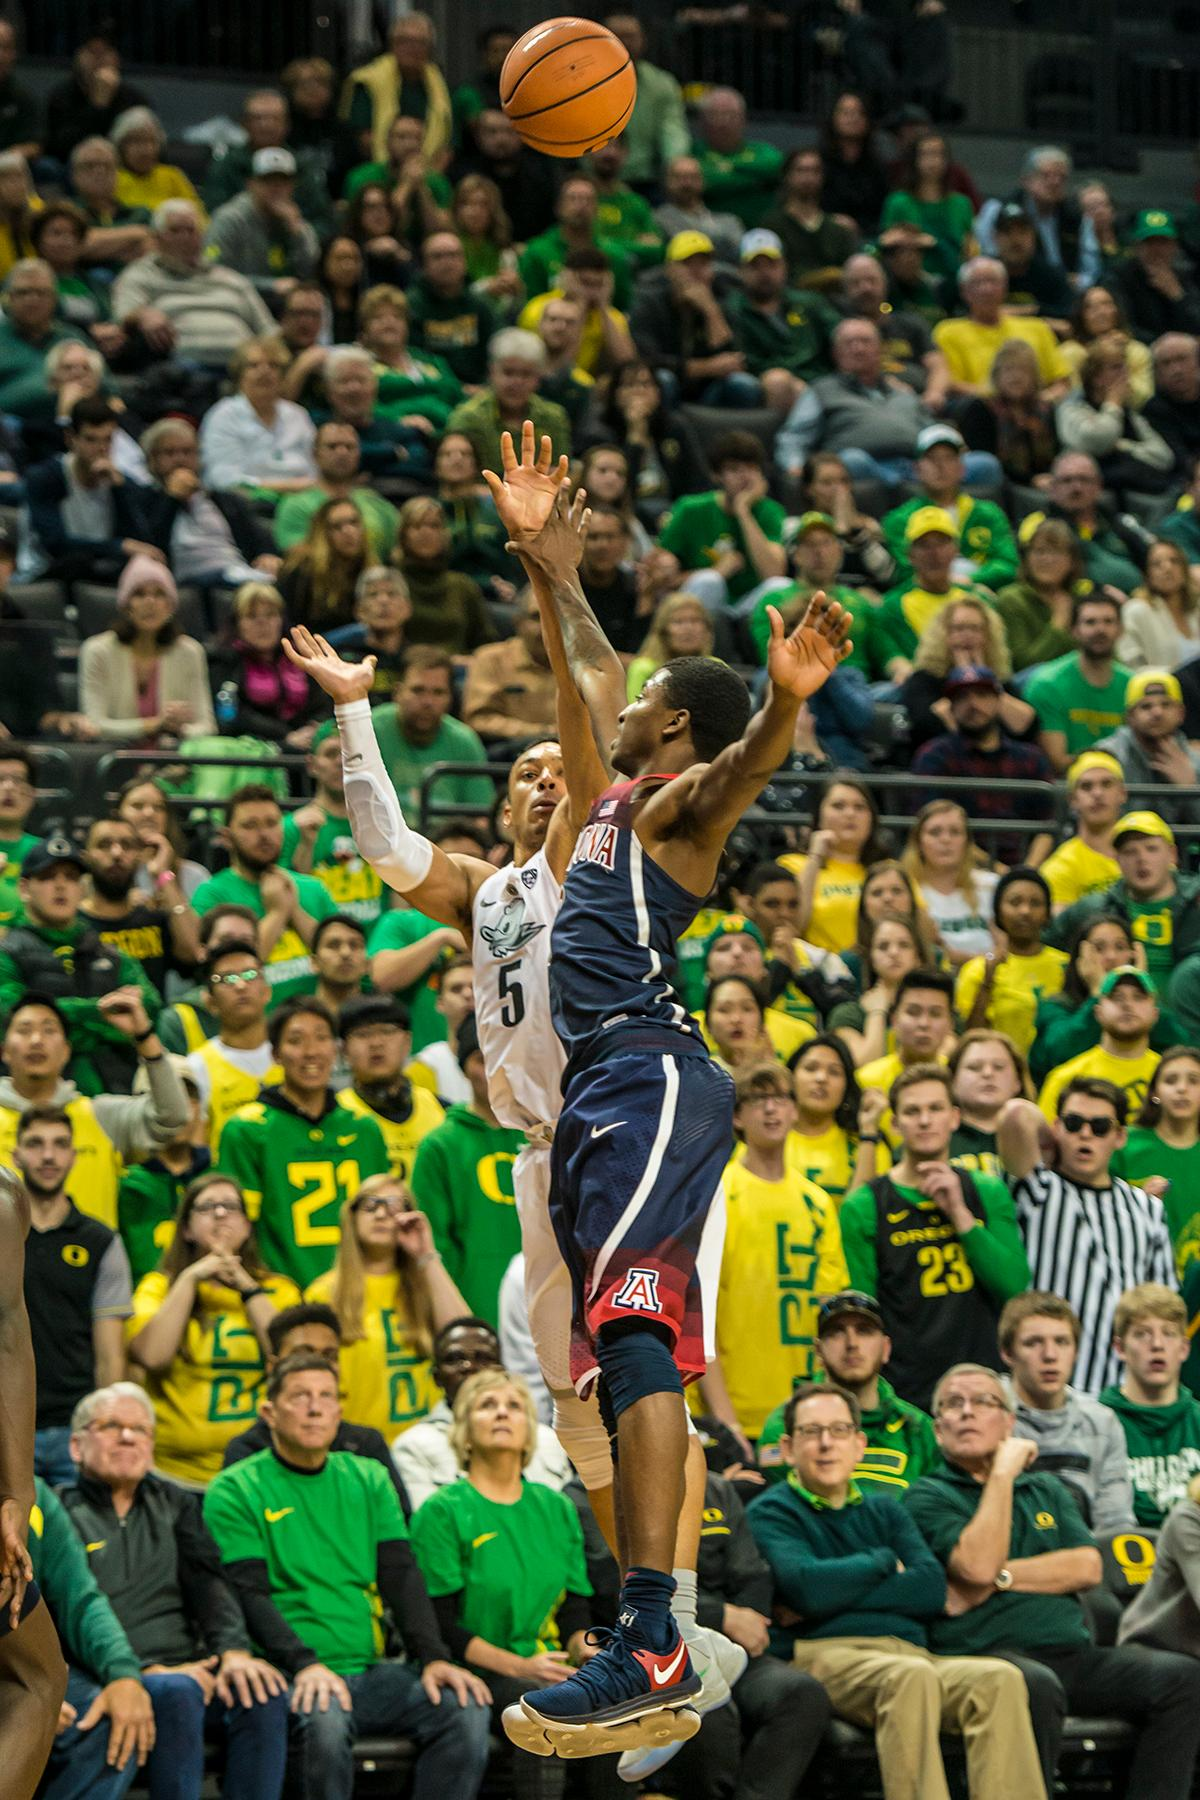 Oregon's Elijah Brown shoots for three over an Arizona defender in theor matchup at Matthew Knight Arena Saturday. The Ducks upset the fourteenth ranked Wildcats 98-93 in a stunning overtime win in front of a packed house of over 12,000 fans for their final home game to improve to a 19-10 (9-7 PAC-12) record on the season. Oregon will finish out regular season play on the road in Washington next week against Washington State on Thursday, then Washington on the following Saturday. (Photo by Colin Houck)